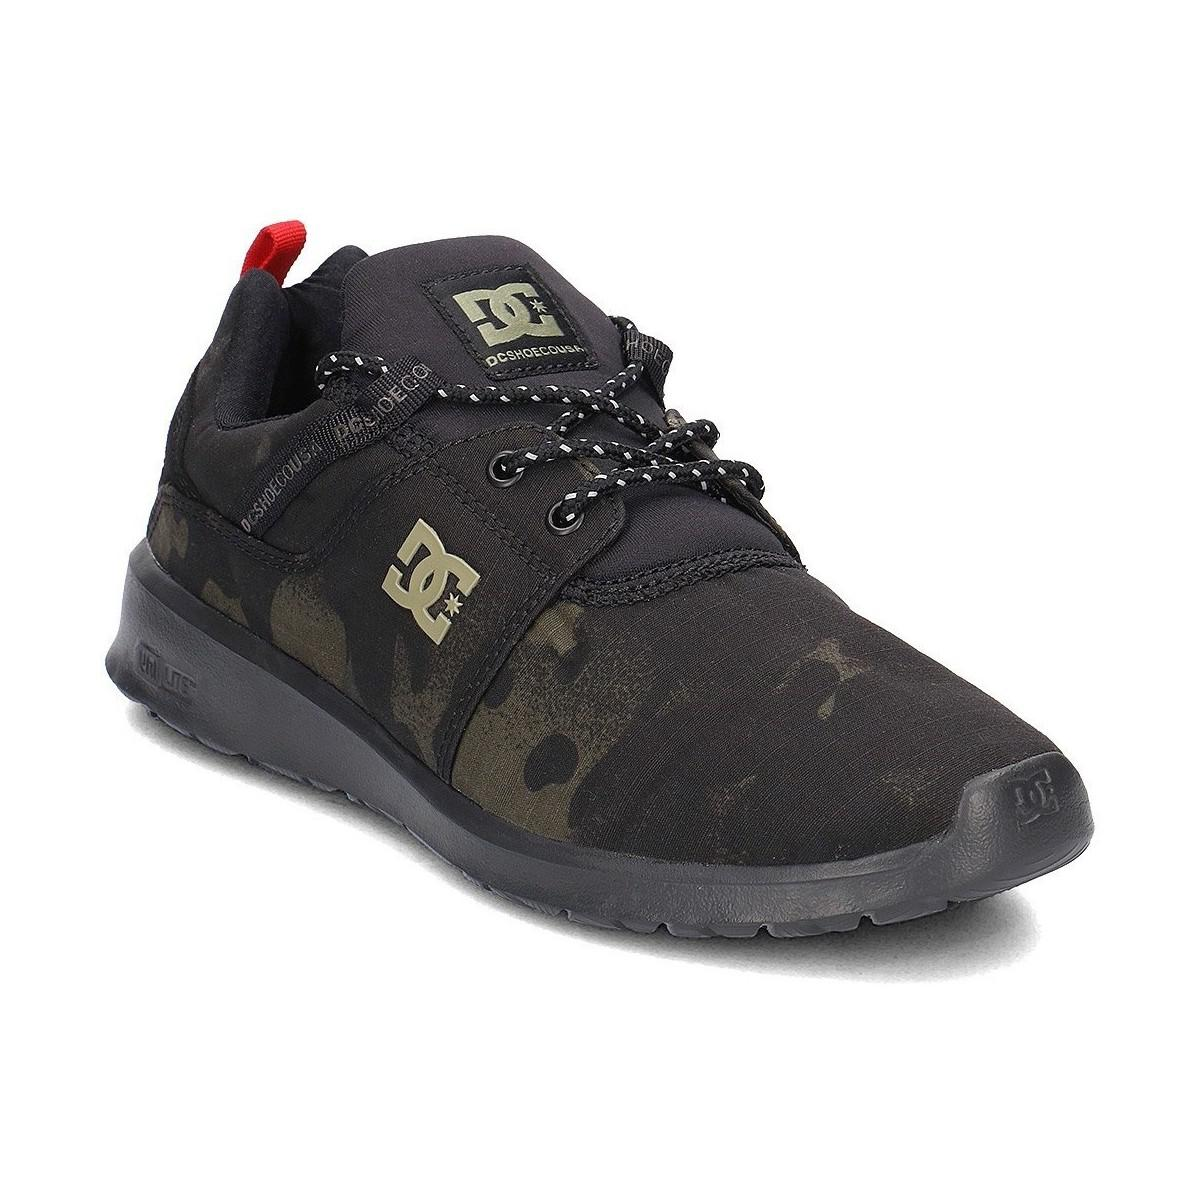 cb31151e9e DC Shoes Heathrow Tx Se Men's Shoes (trainers) In Black in Black for ...